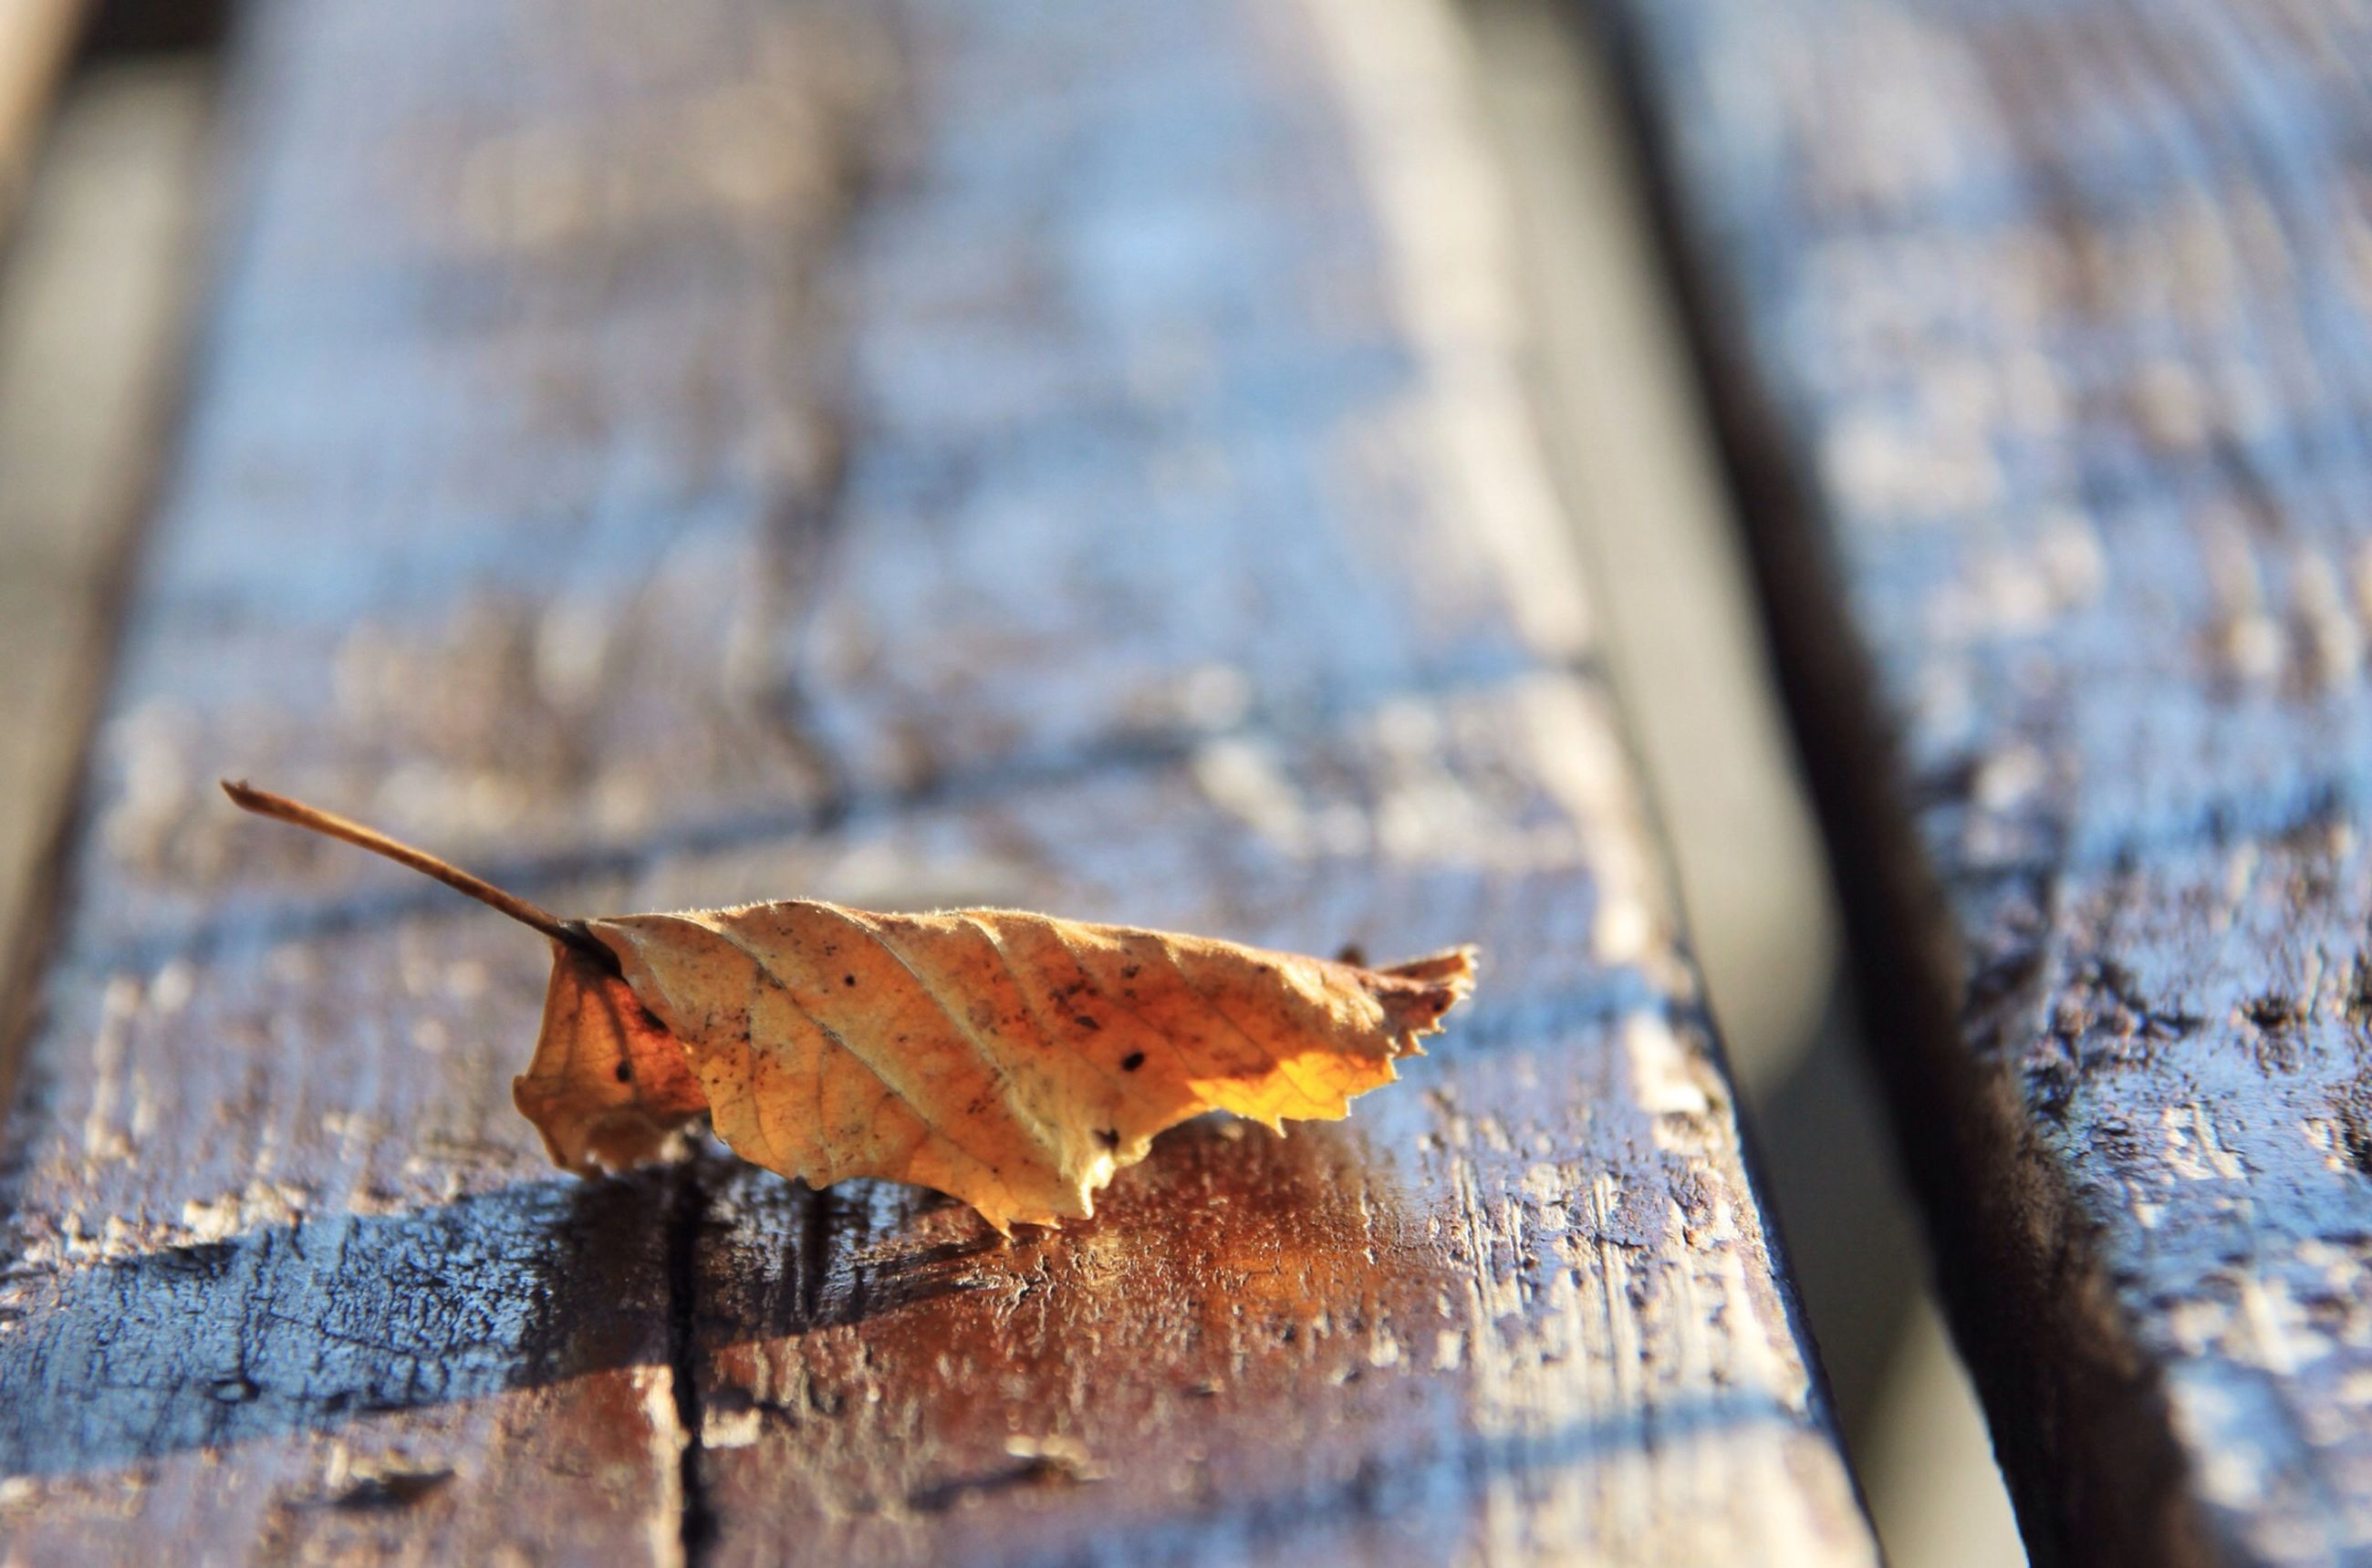 autumn, leaf, change, dry, season, wood - material, leaves, close-up, fallen, maple leaf, selective focus, focus on foreground, plank, nature, outdoors, day, aging process, wooden, leaf vein, wood